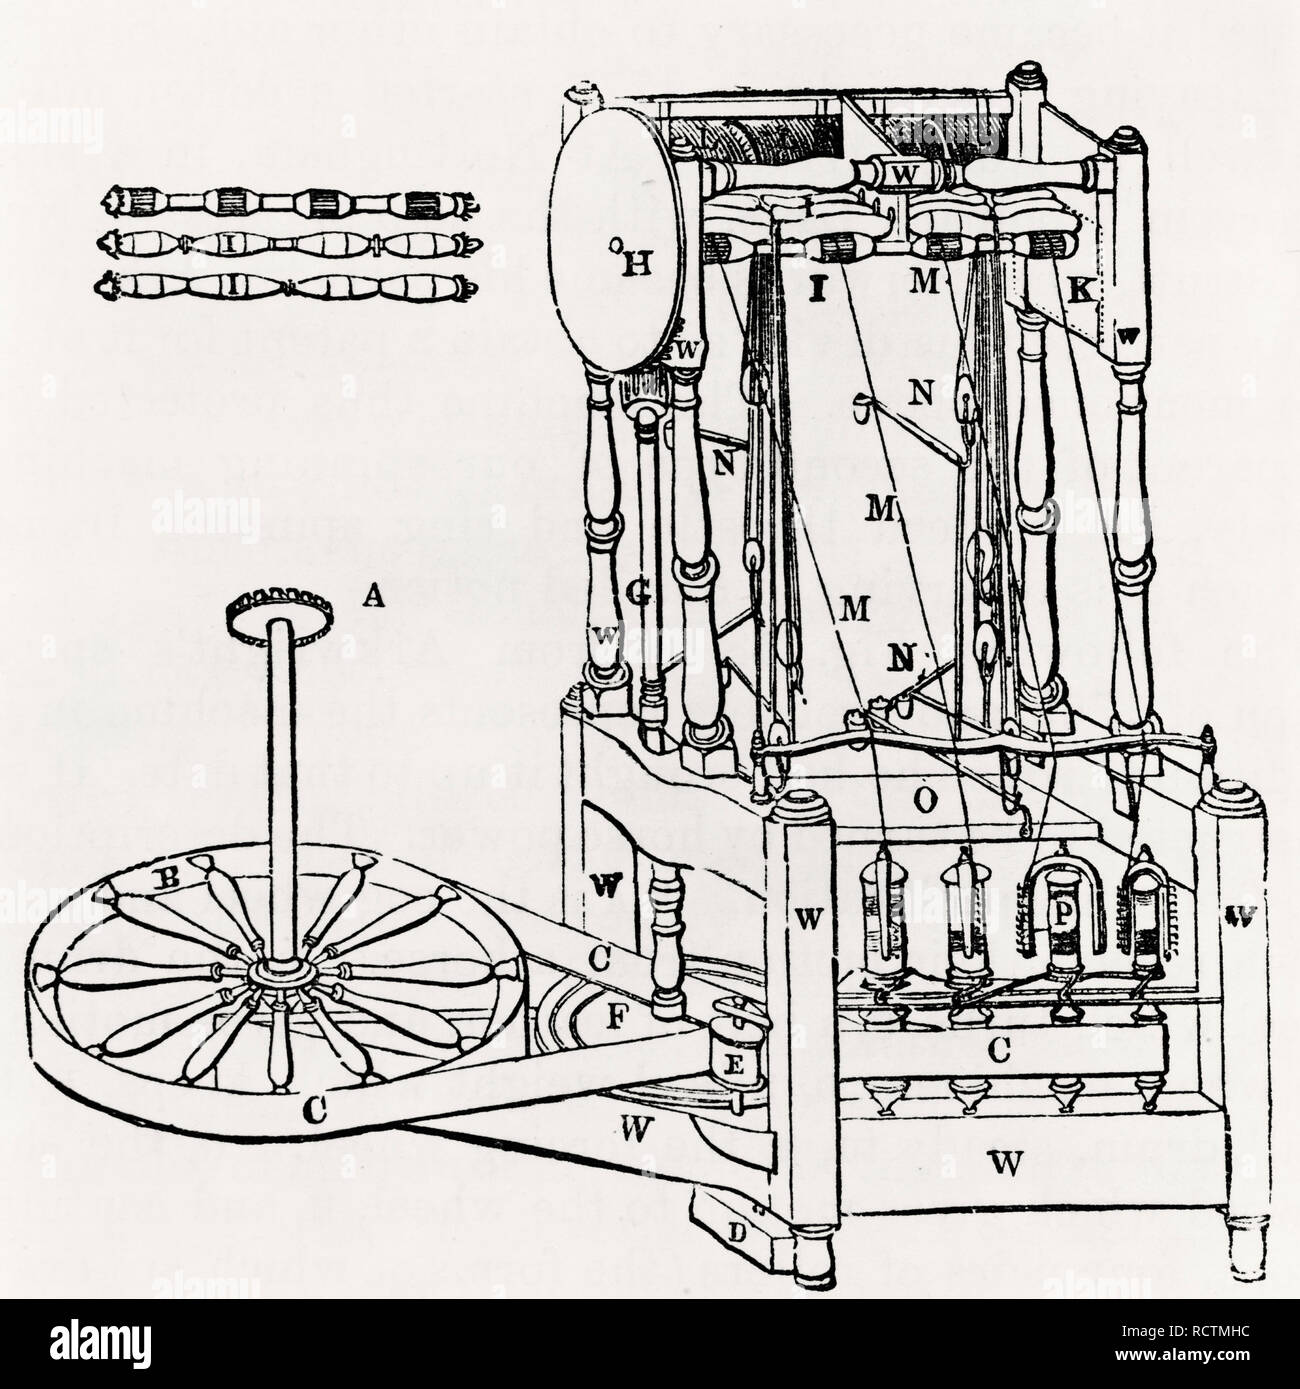 Detailed design for a large thread spinning machine - Stock Image